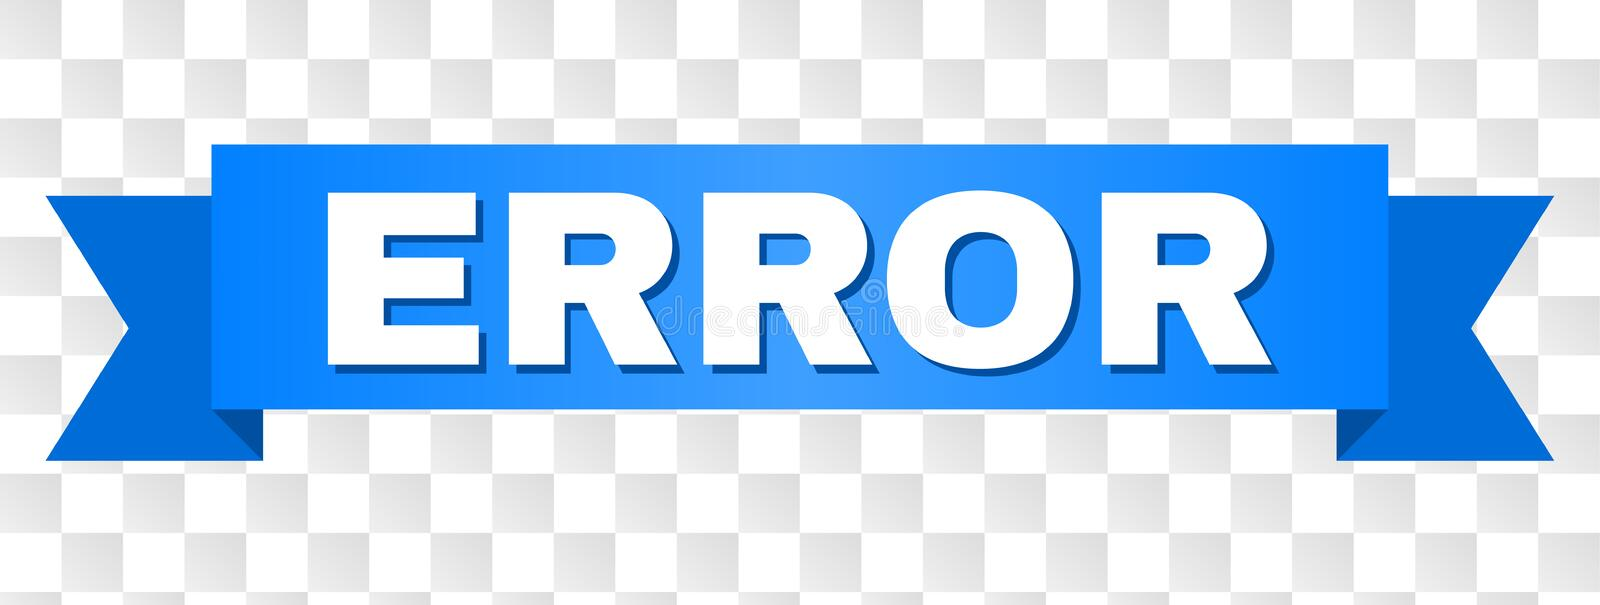 Blue Ribbon with ERROR Caption. ERROR text on a ribbon. Designed with white caption and blue tape. Vector banner with ERROR tag on a transparent background vector illustration